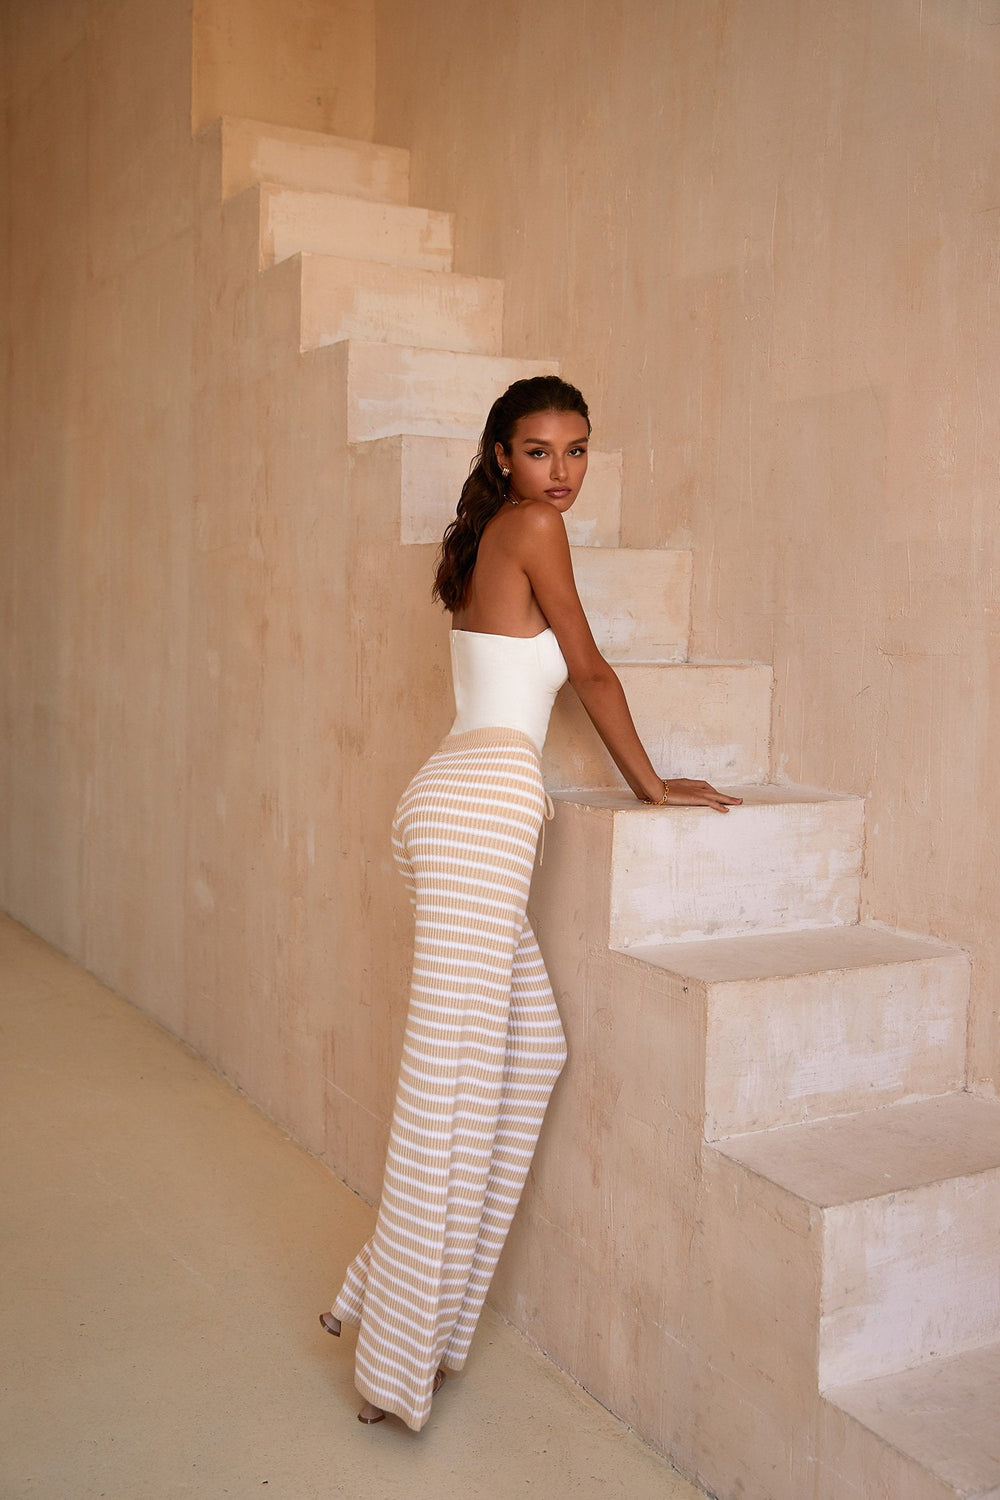 Alexa Striped Pants - High Waisted White & Beige Flared Lounge Pants